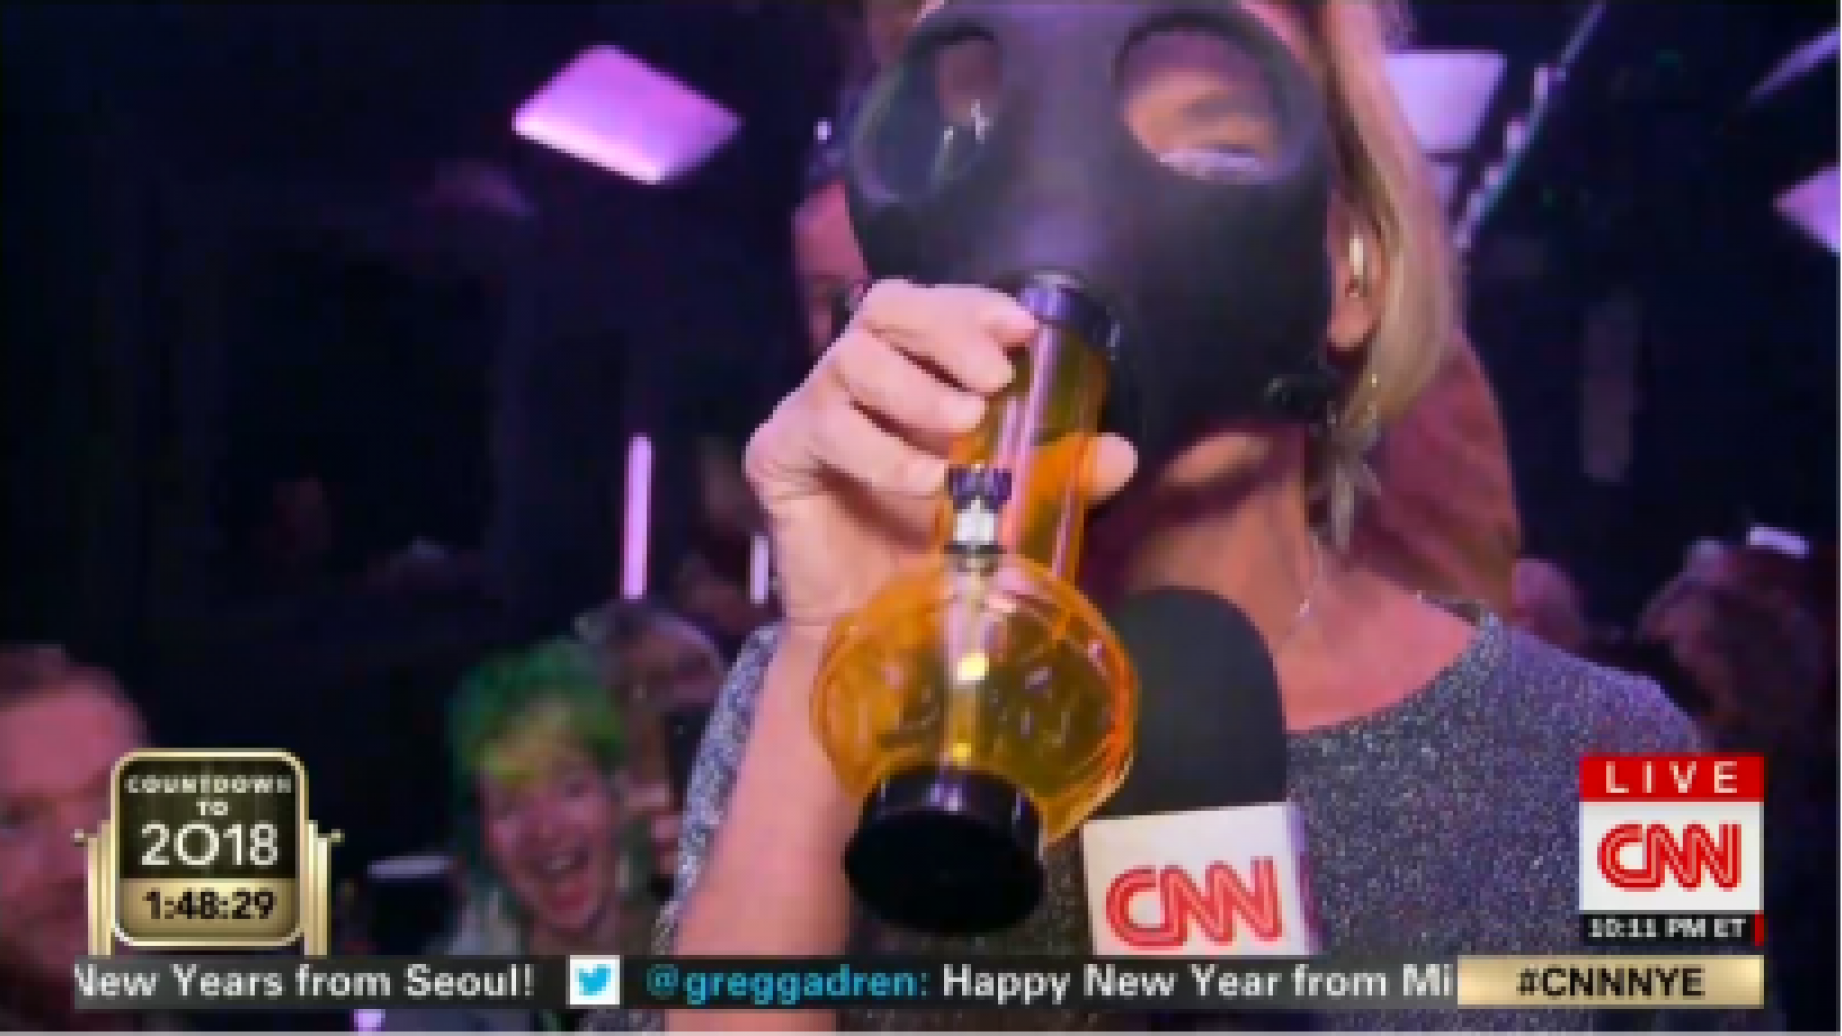 CNN Promotes Smoking Marijuana During New Year's Eve Celebration